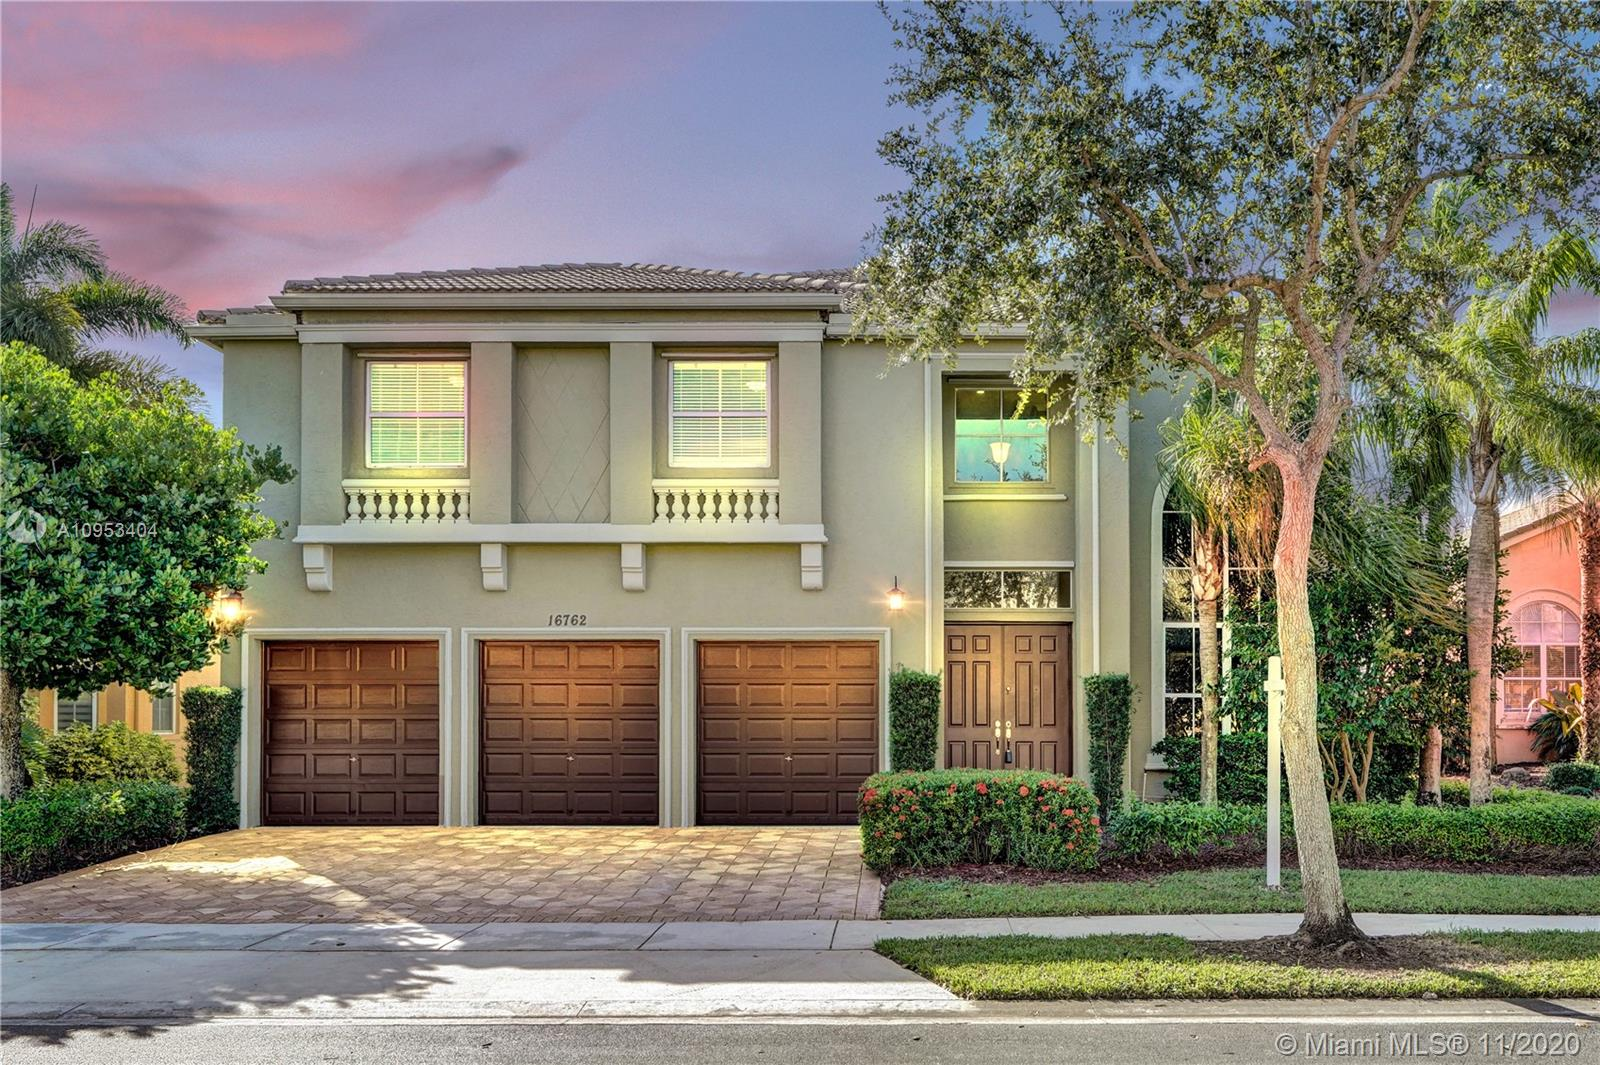 STUNNING MOVE IN READY 2 STORY LAKE FRONT POOL HOME W/ 5 BED (2 W/ENSUITES) 4 BATH + 1 ADD'L ROOM (DEN/OFFICE/NURSERY IN MASTER BED) W/A 3 CAR GARAGE IN COVETED BEAUTIFUL LIDO ISLES. LOCATED ON A CUL-DE-SAC W/180 DEGREE ENORMOUS LAKE VIEWS. FEATURES INCLUDE:OPEN FLOOR PLAN,VOLUME CEILINGS,CROWN MOLDING,PAVERS,FRESHLY PAINTED,GRANITE COUNTER TOPS,LARGE EAT IN KITCHEN,STORAGE ROOM,LAUDRY ROOM W/STORAGE CLOSET,1ST FL BEDROOM CURRENTLY FURNISHED W/ BUILT-INS 4 AN OFFICE BUT CAN BE USED AS A BEDROOM,CABANA/FULL BATHROOM,2ND FLOOR LOFT AREA,LARGE MASTER BED/BATH W HUGE WALK IN CLOSET, JETTED BATH TUB & FULL OUTSIDE BALCONY. YOU WILL ALSO ENJOY A LARGE OUTSIDE BACK PATIO W/ A POOL/WATER FEATURE & BEAUTIFUL LANDSCAPING. A+ SCHOOLS, CLOSE 2 SHOPPING & MAJOR HIGHWAYS. DON'T BLINK THIS WILL NOT LAST!